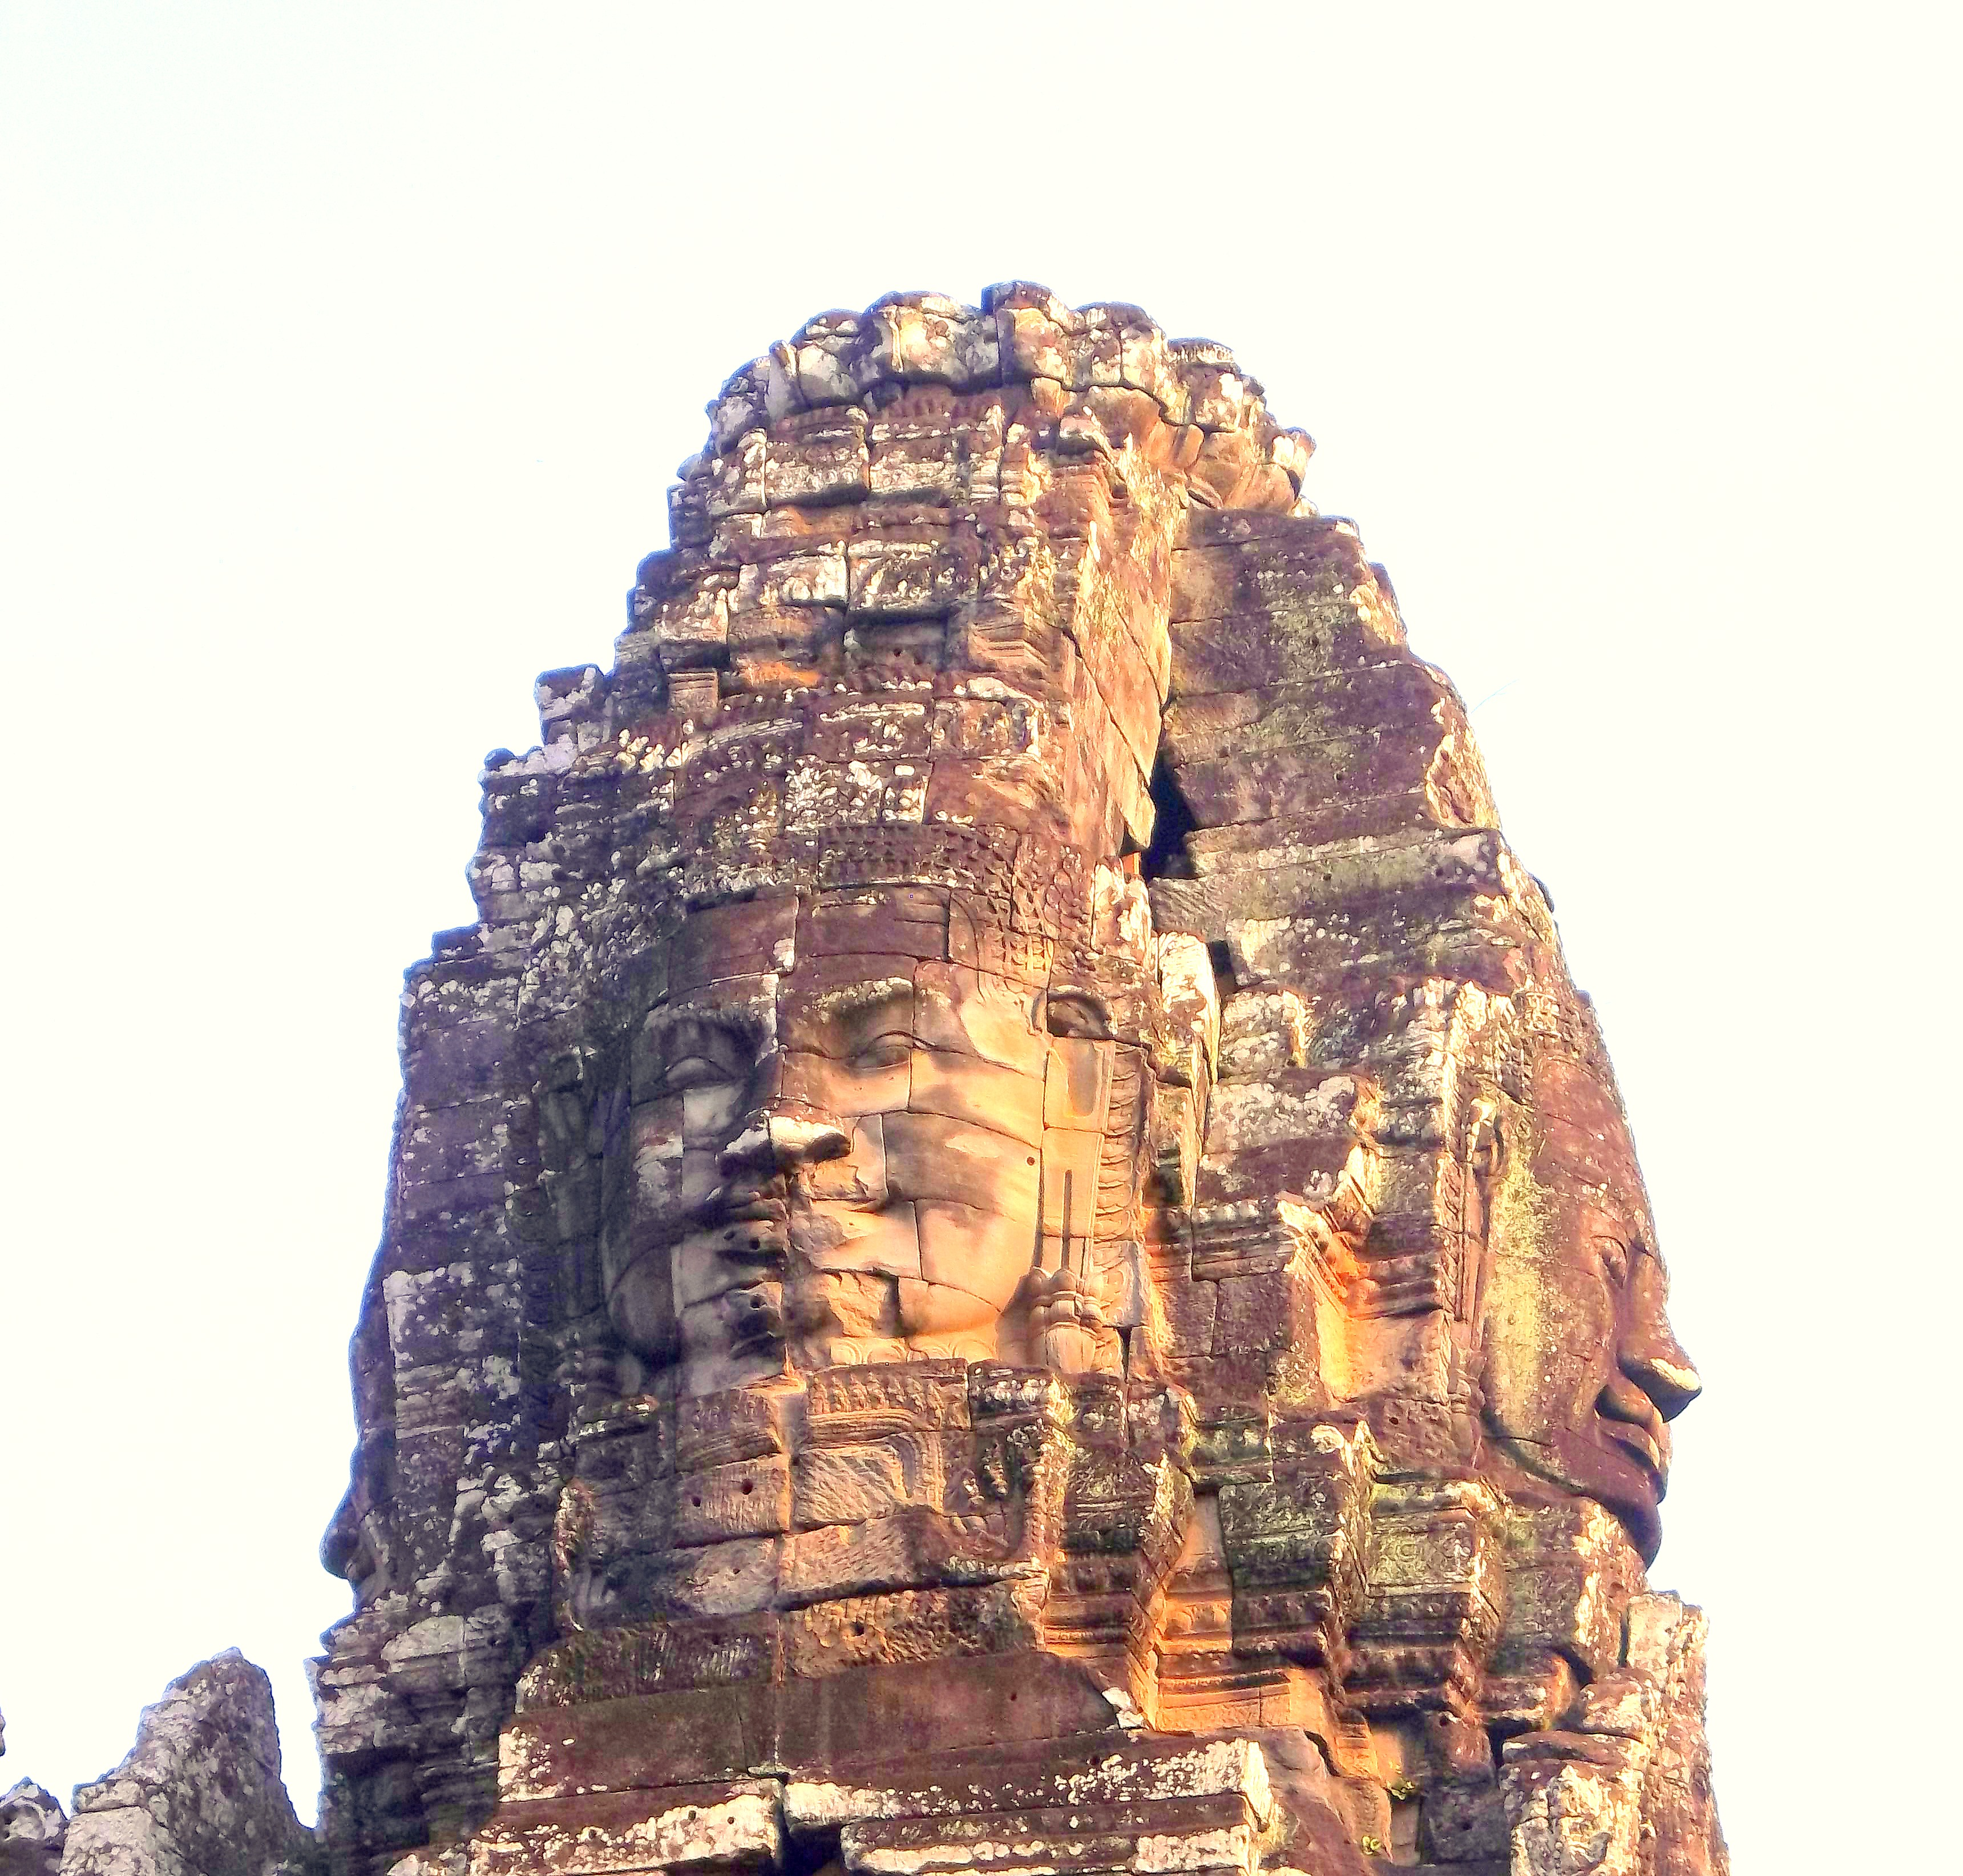 Angkor Wat - Bayon Temple has 37 Towers - Most with Faces - Cambodia